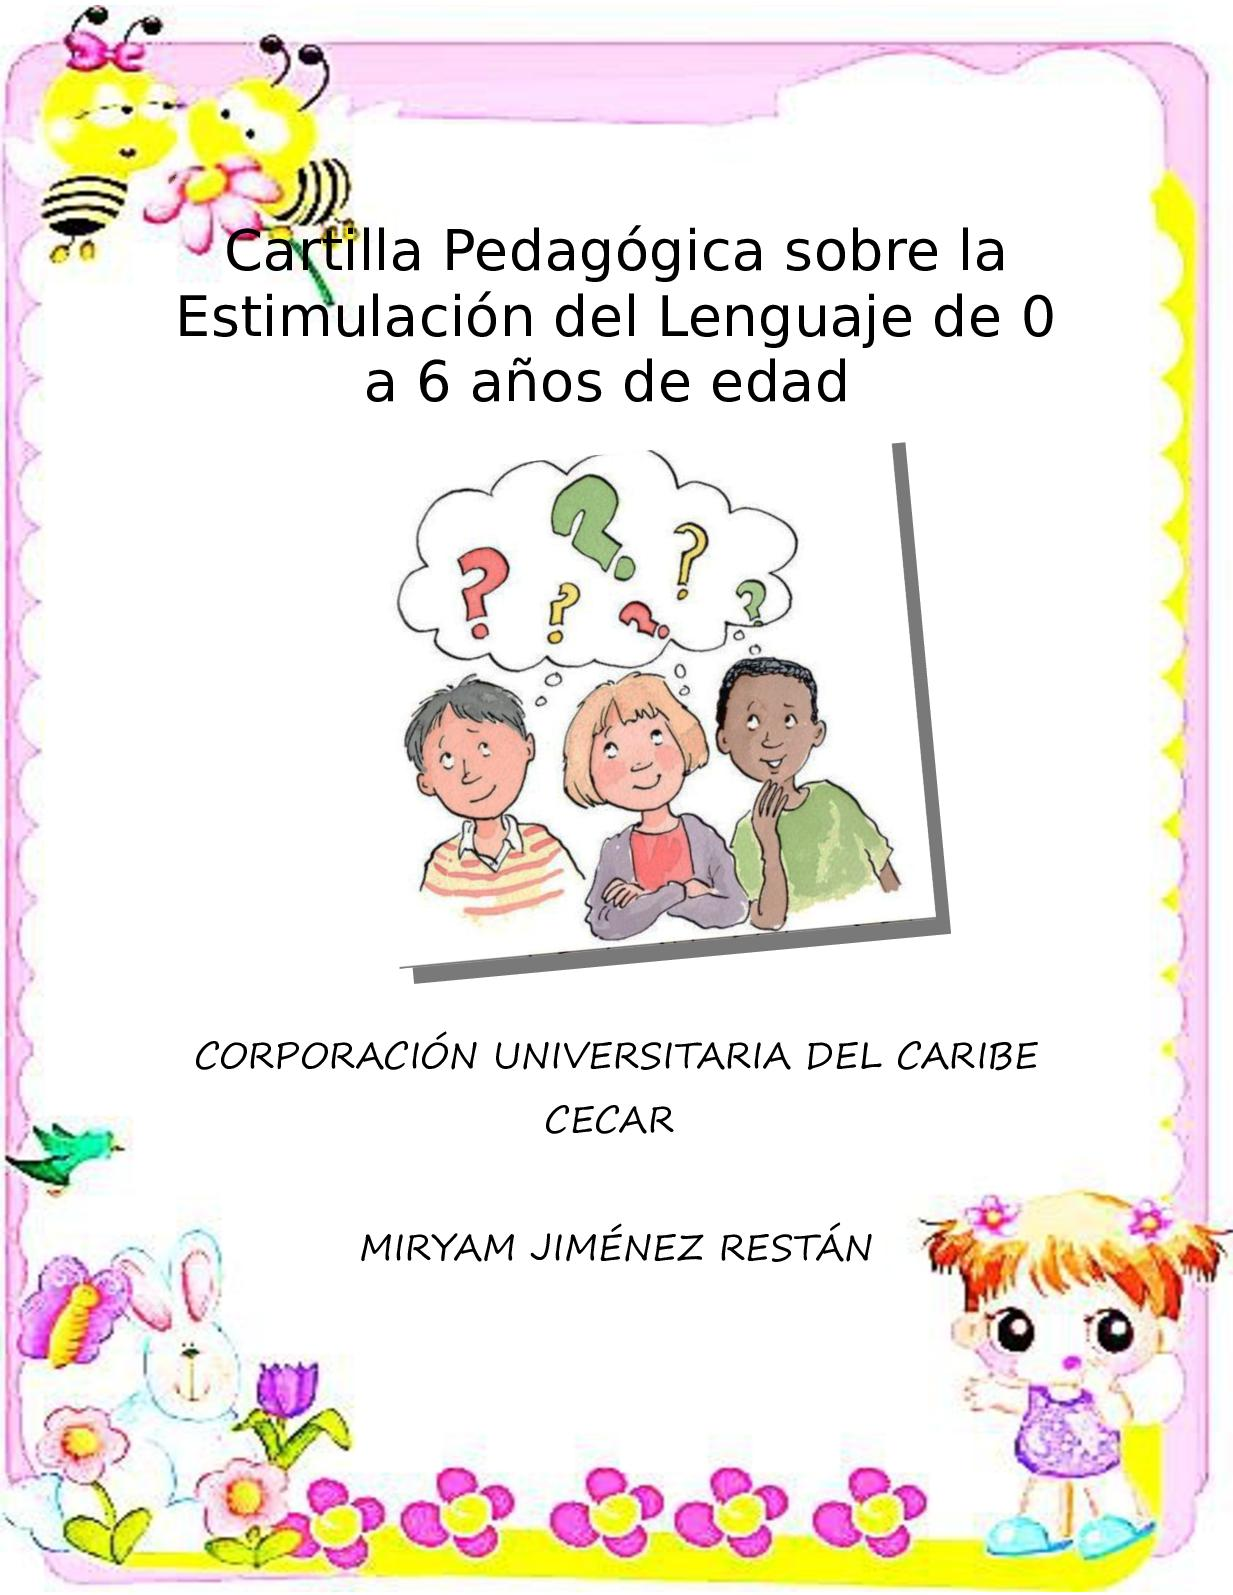 Cartilla Pedagogica